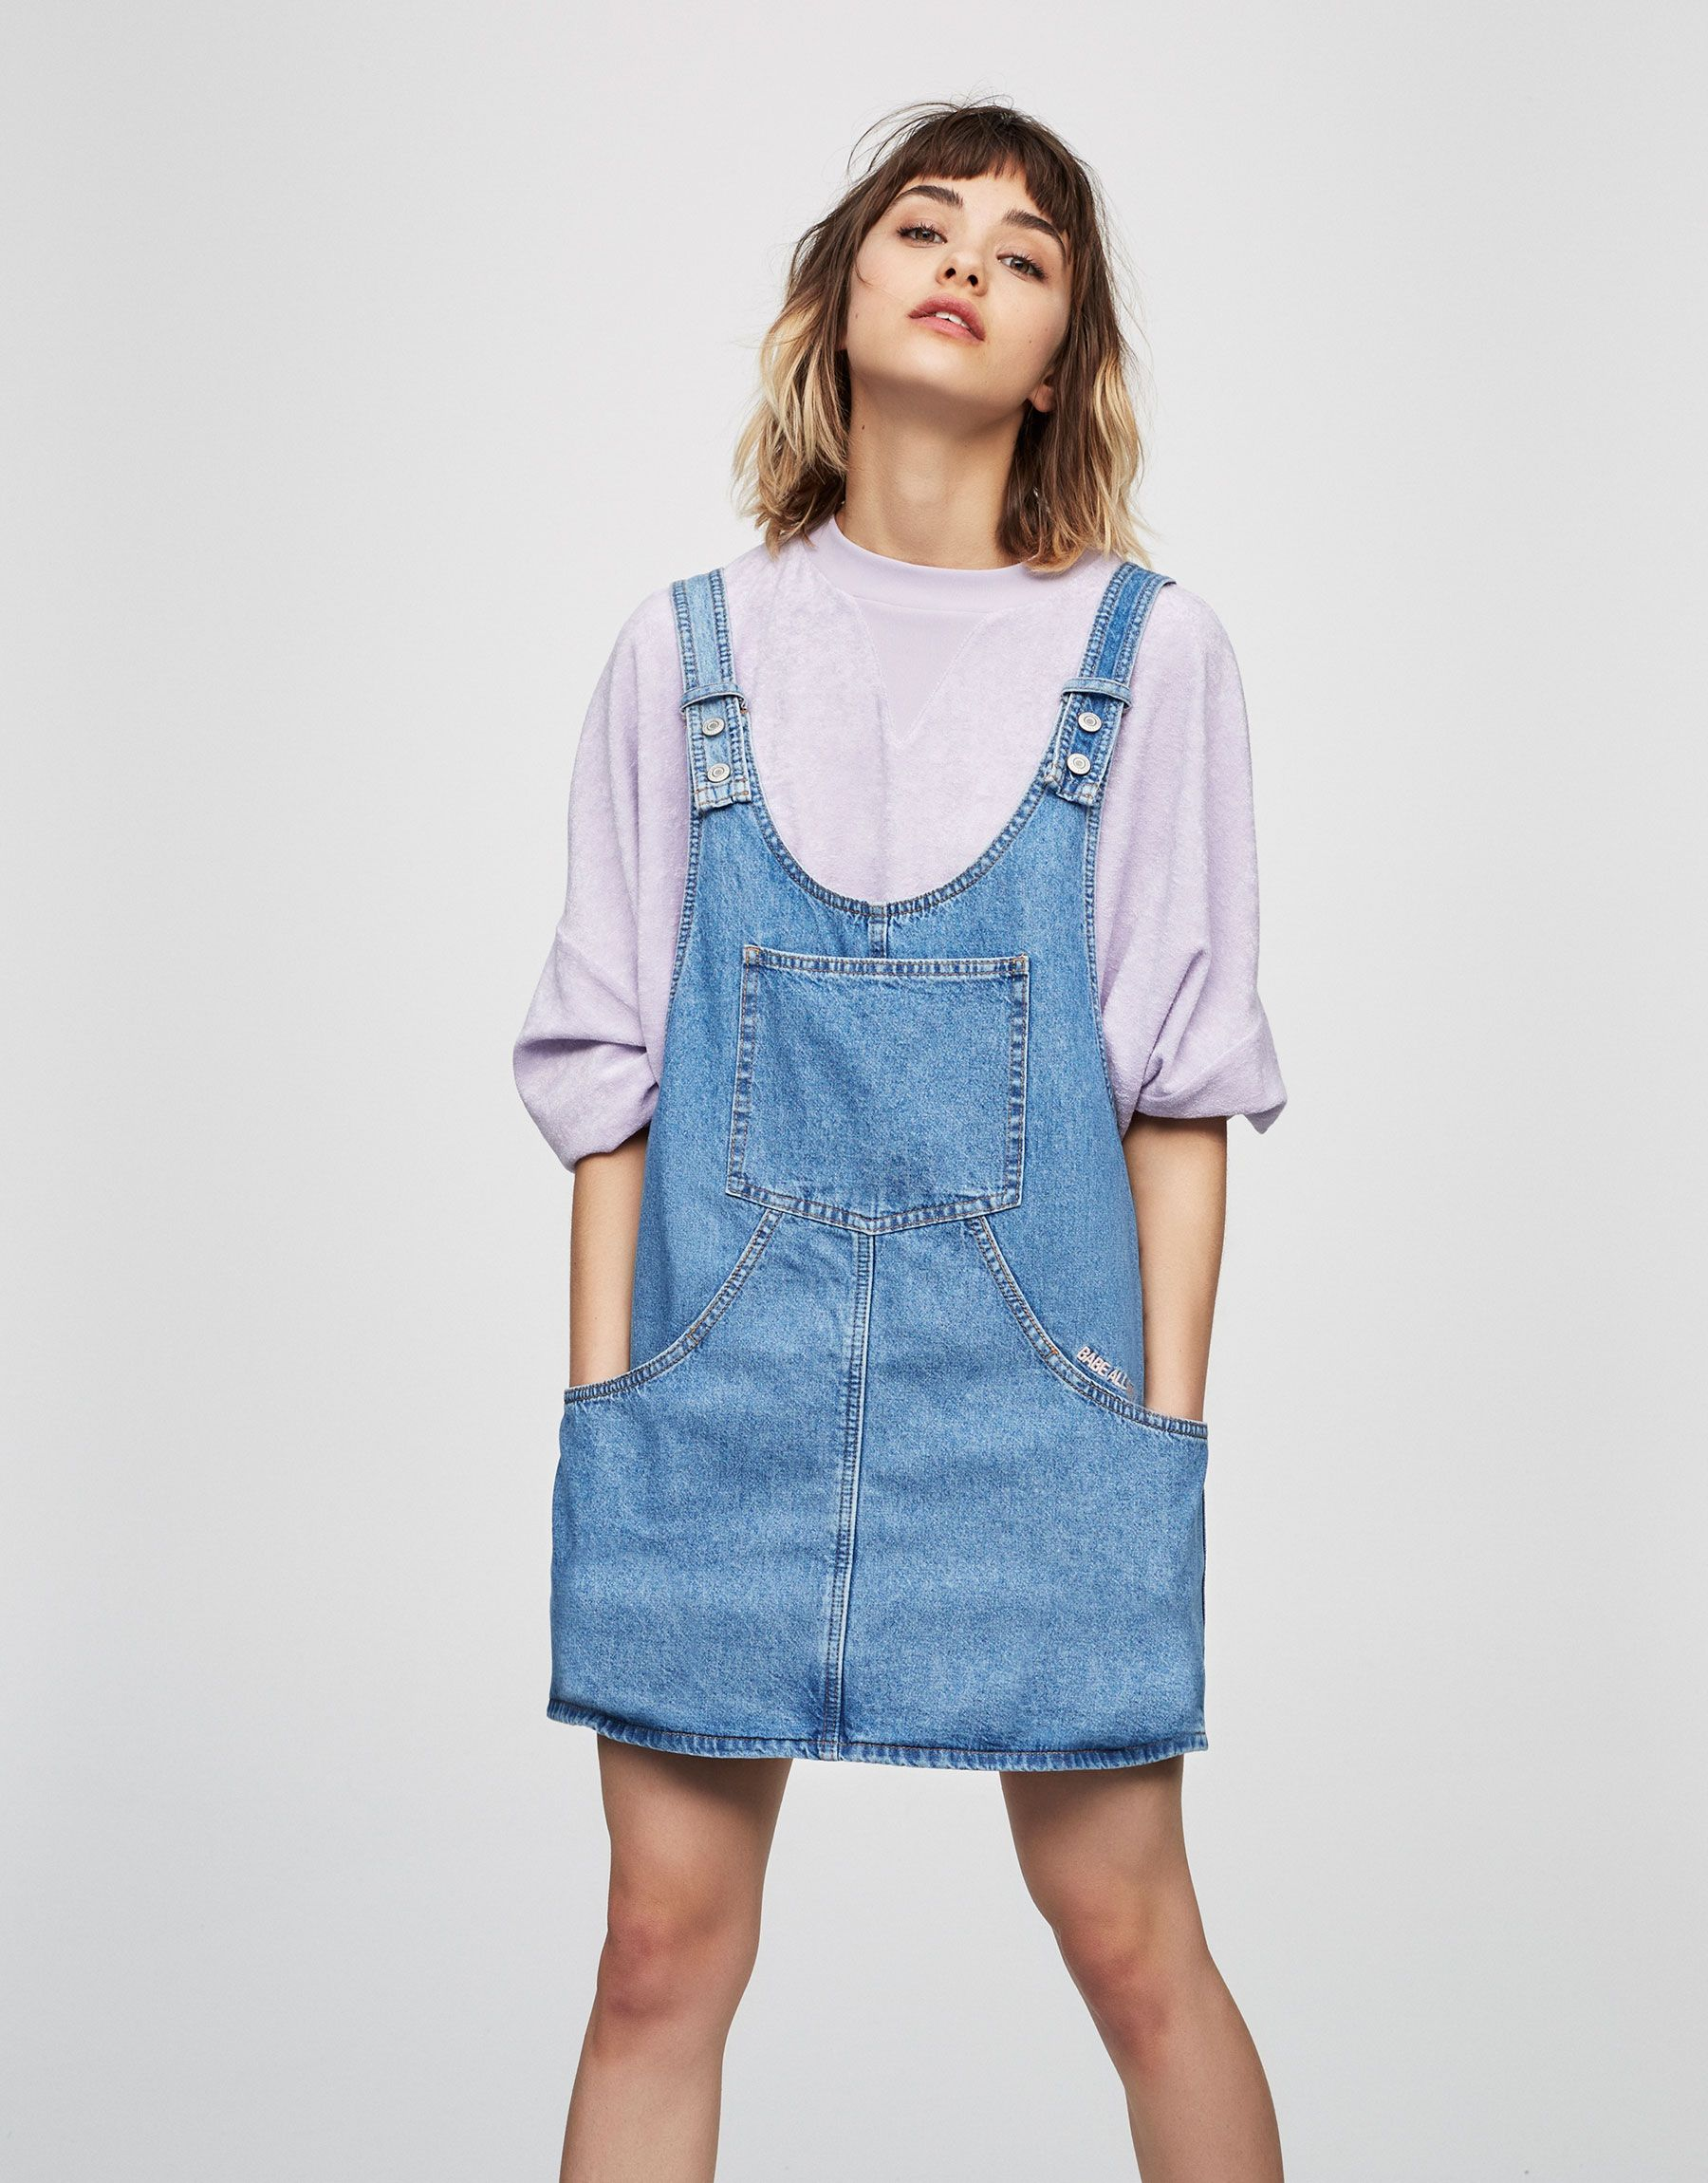 The most comfortable dresses on sale for women at PULL&BEAR.